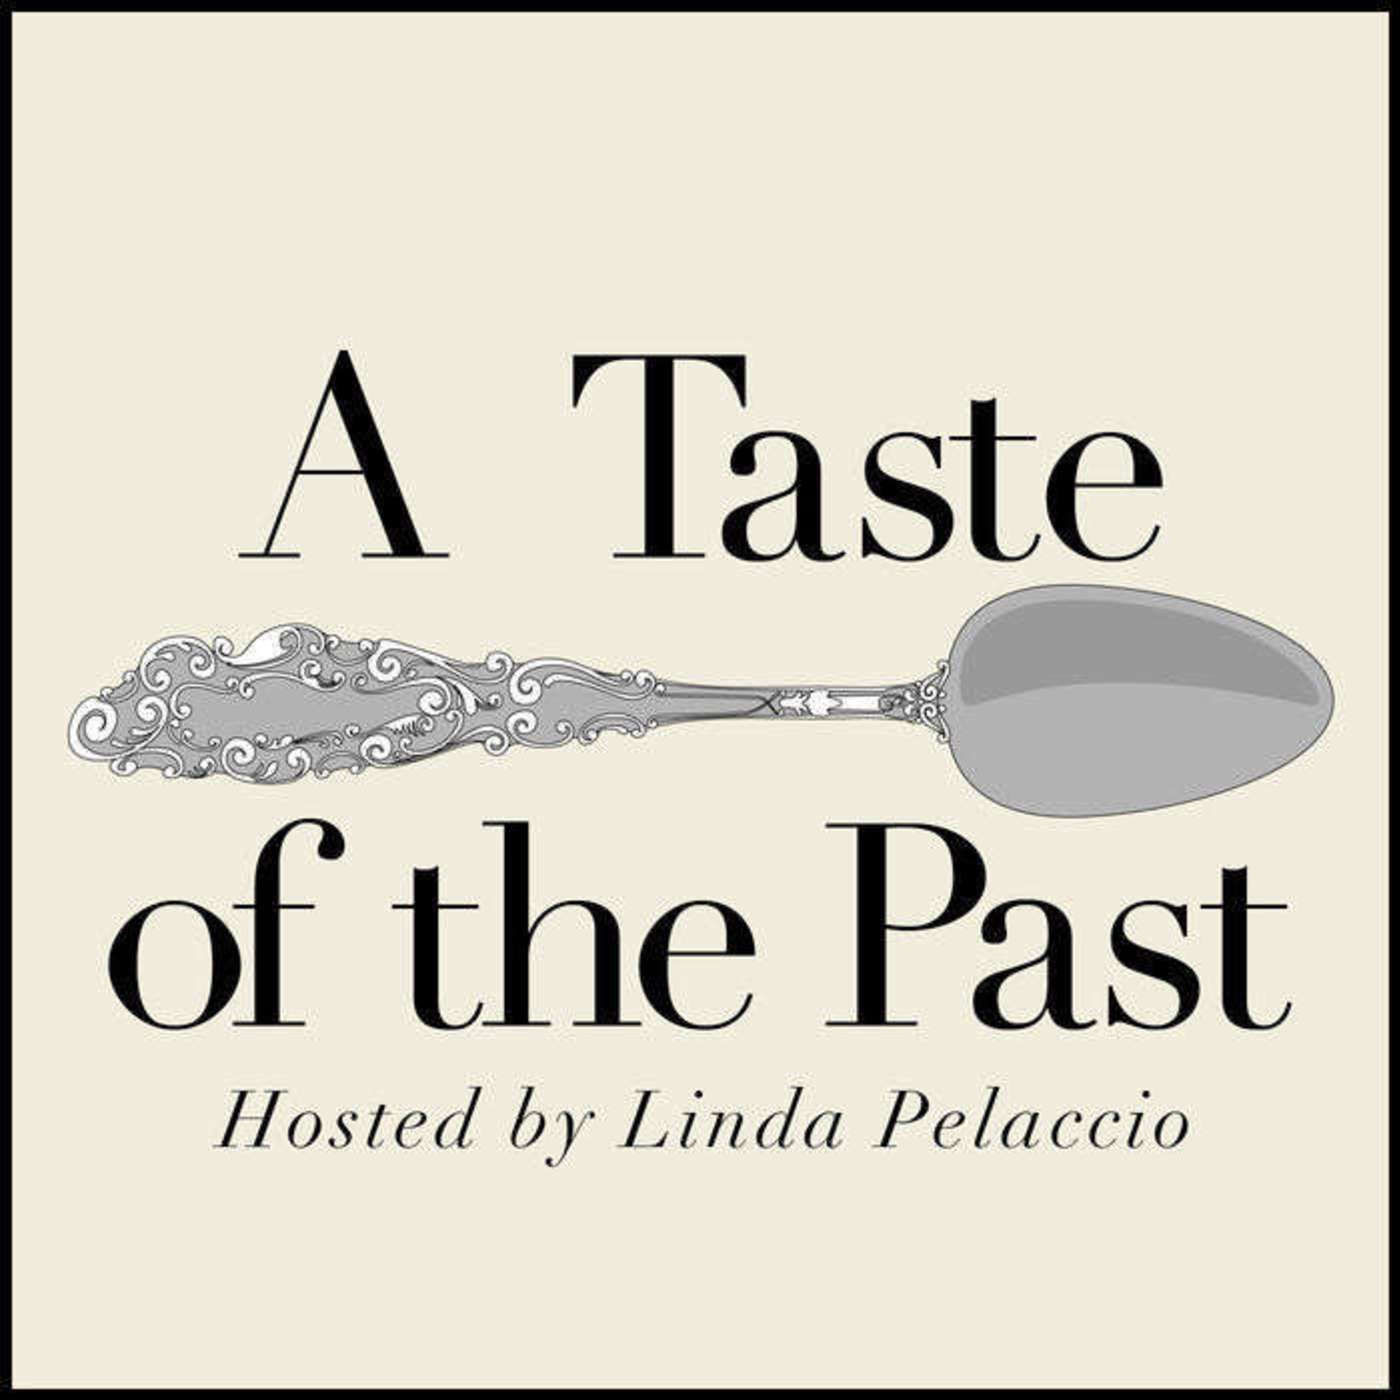 Episode 141: A History of Food in 100 Recipes